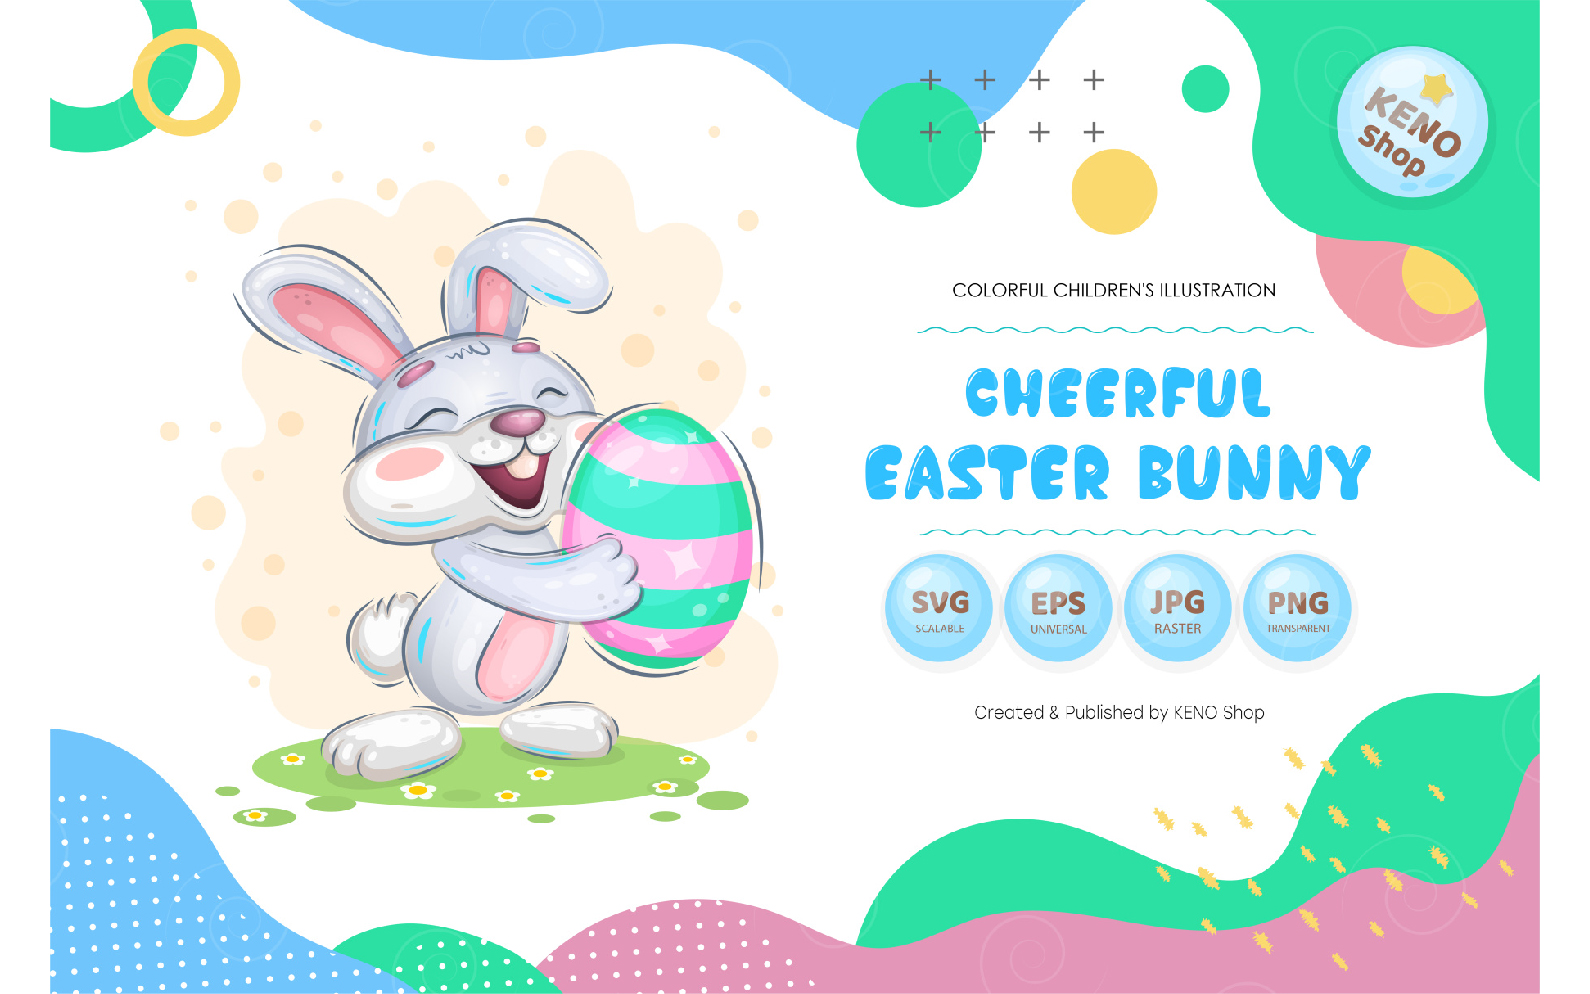 Cheerful easter bunny - Vector Image